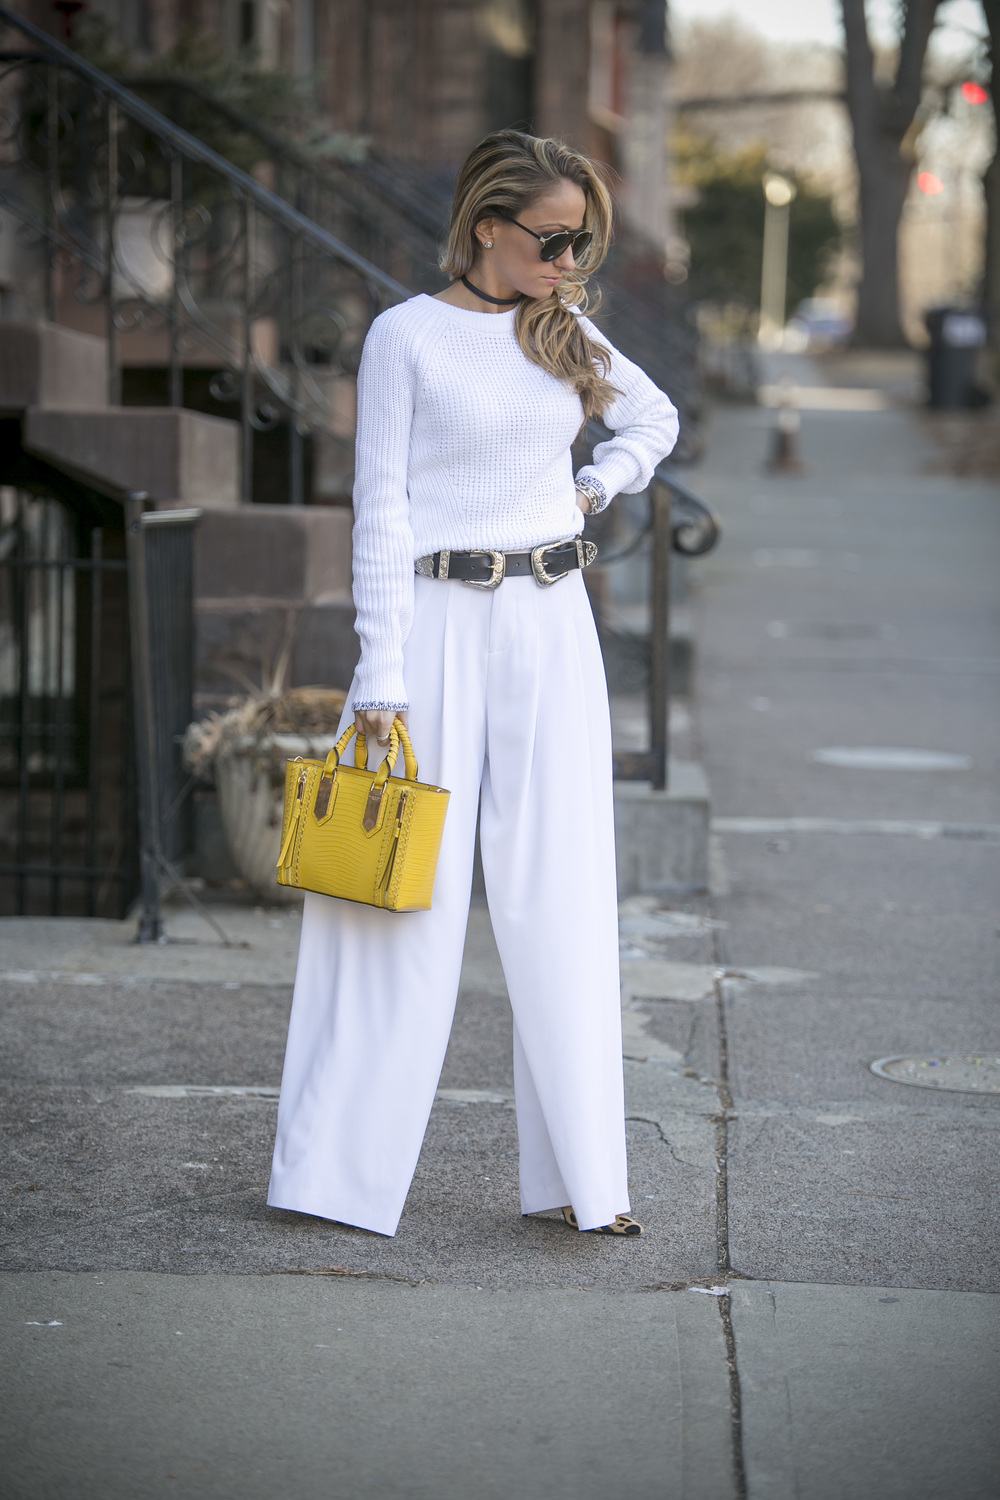 streetstyle blogger wearing Rag and Bone sweater, Alice and Olivia pants, Henri Bendel Bag, and B-low the belt